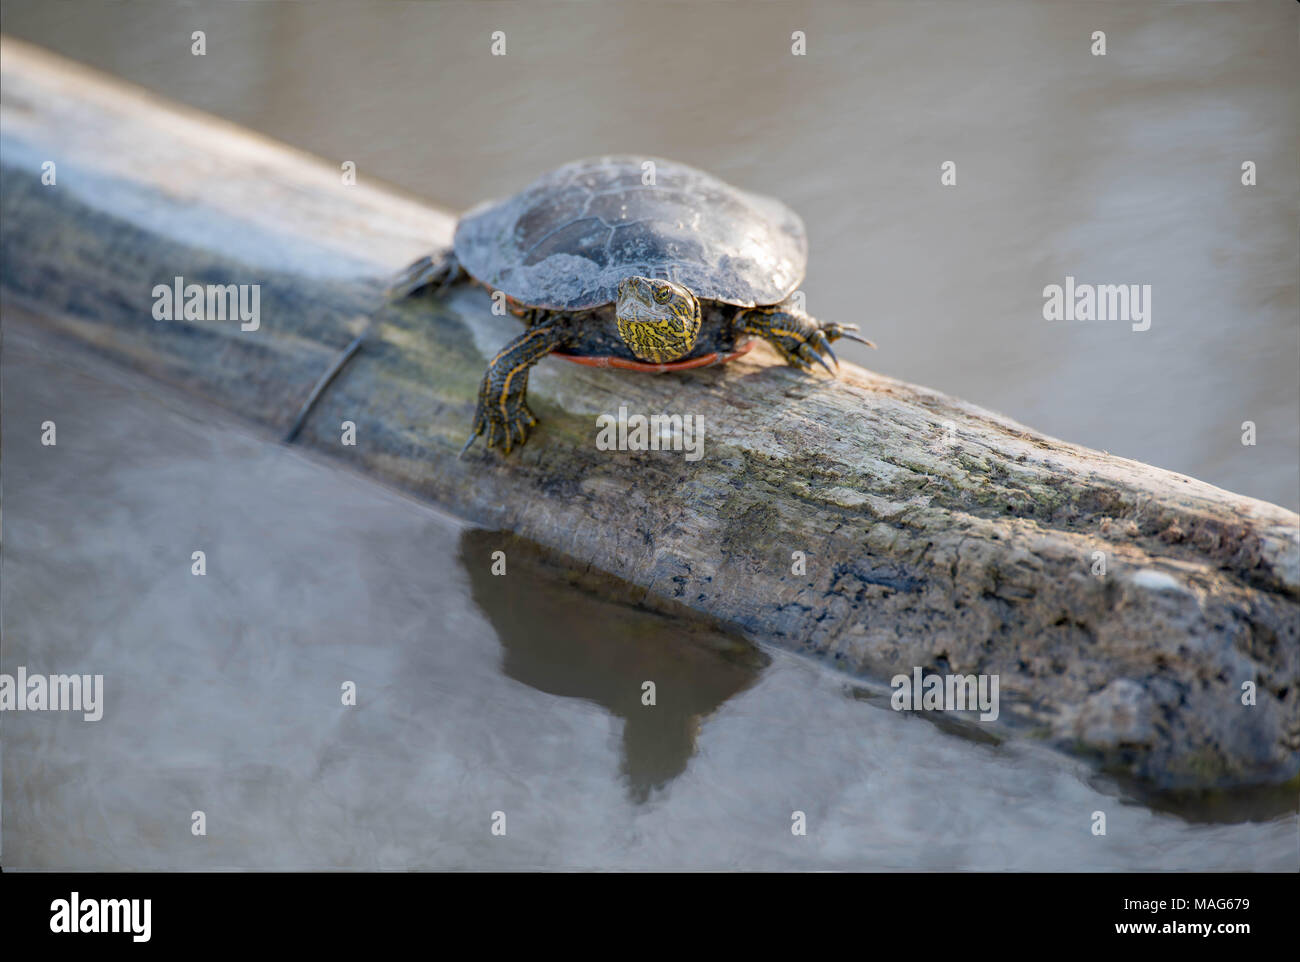 Basking Western painted Turtle, (Chrysemys pita bellii).  Bosque del Apache National Wildlife Refuge, New Mexico, USA. - Stock Image